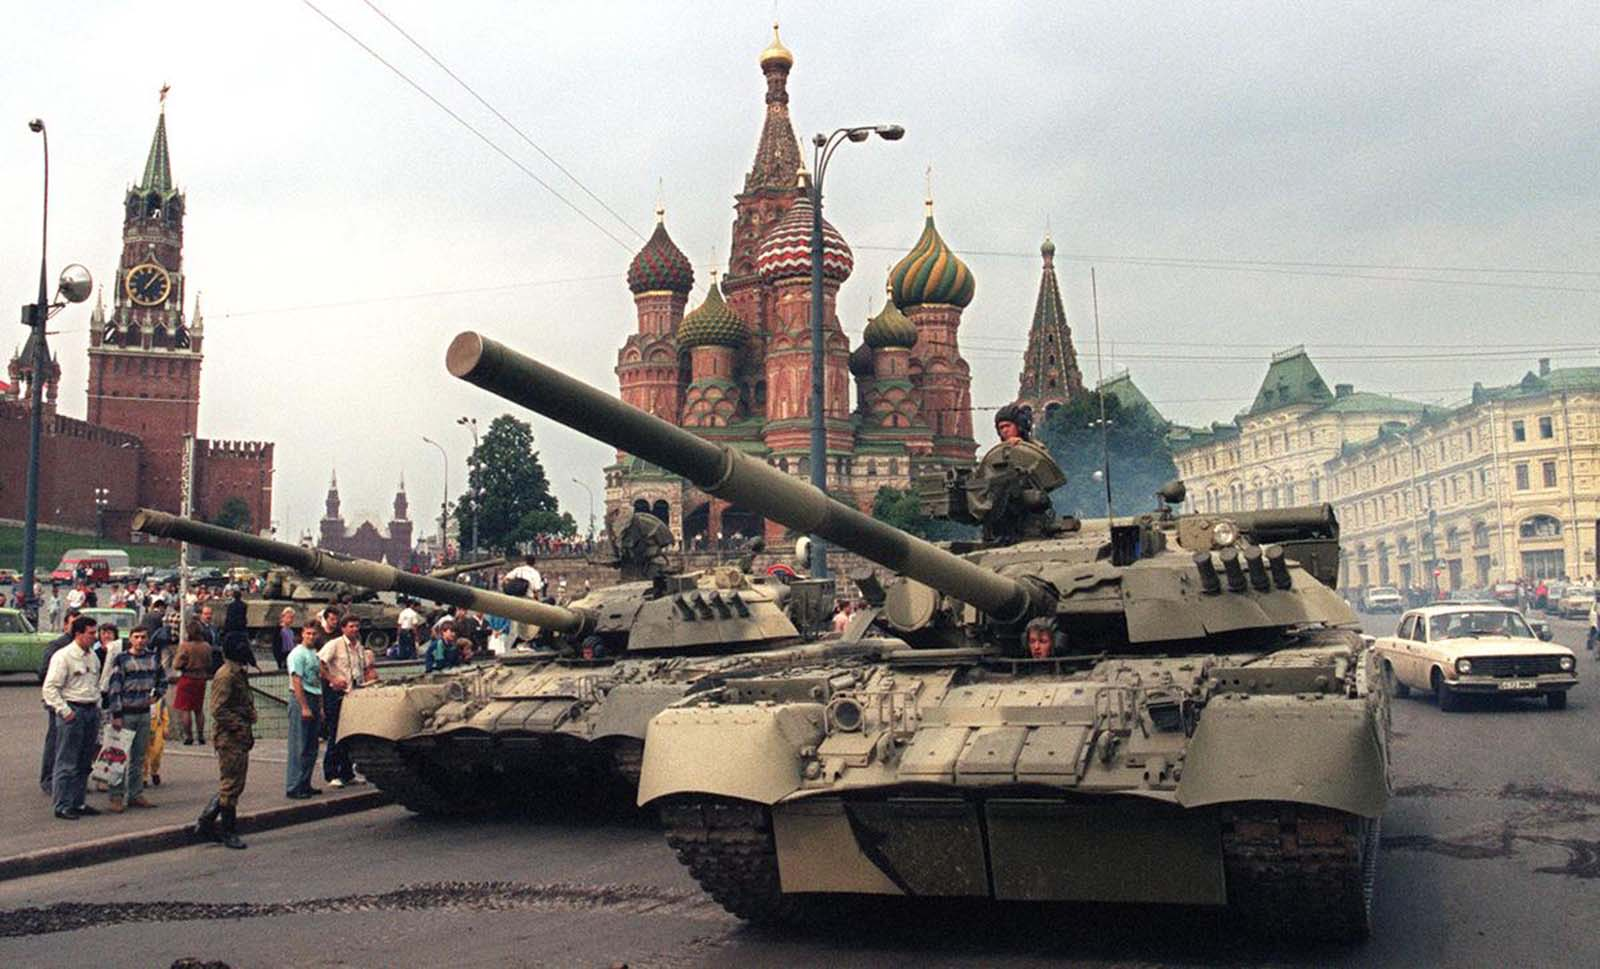 Soviet Army tanks parked near Spassky Gate, an entrance to the Kremlin and Basil's Cathedral in Moscow's Red Square after a coup toppled Soviet President Mikhail Gorbachev on August 19, 1991. Tanks rolled through Moscow towards the Russian White House, where Boris Yeltsin, leader of the Soviet-era Russian republic at the time, gathered his supporters after denouncing the coup.